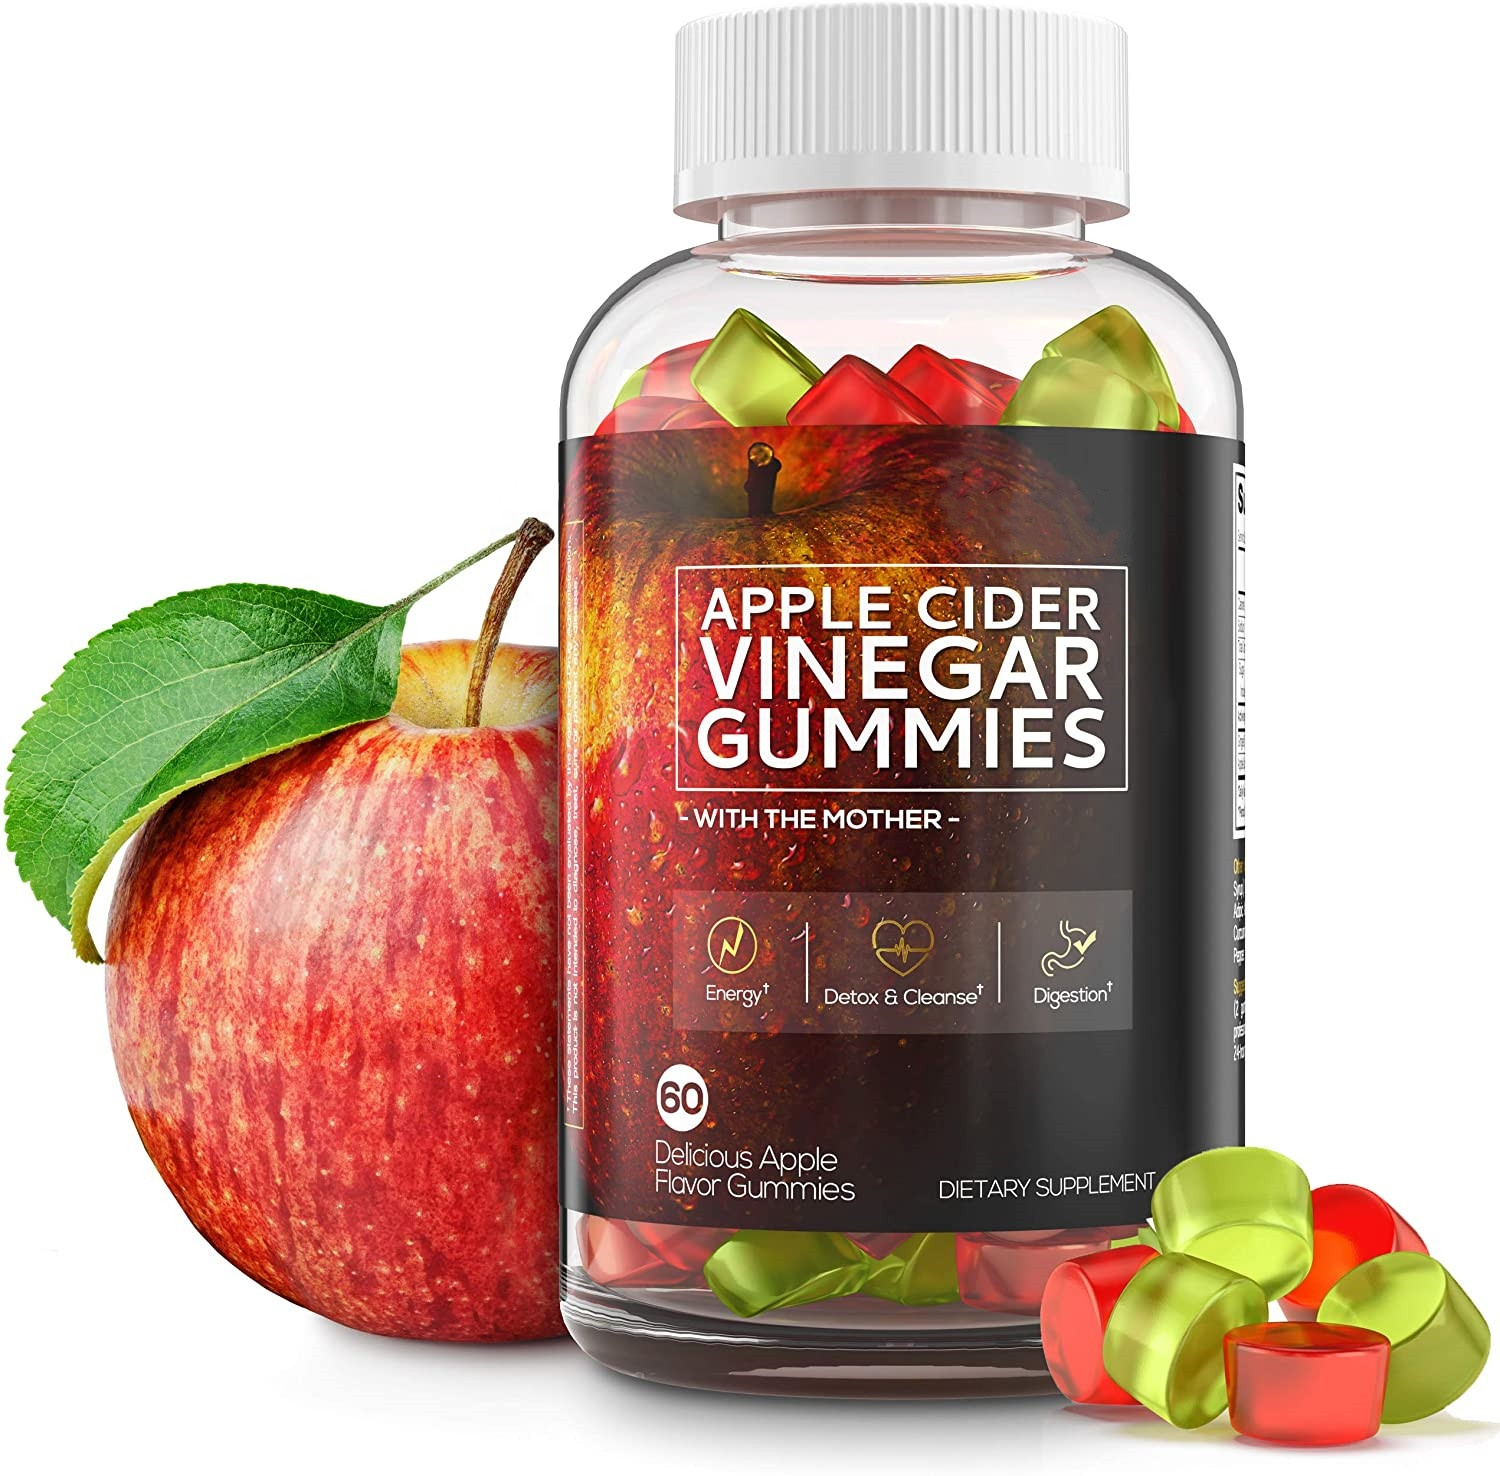 labeling apple cider vinegar gummies vegan for weight loss support improve immune system